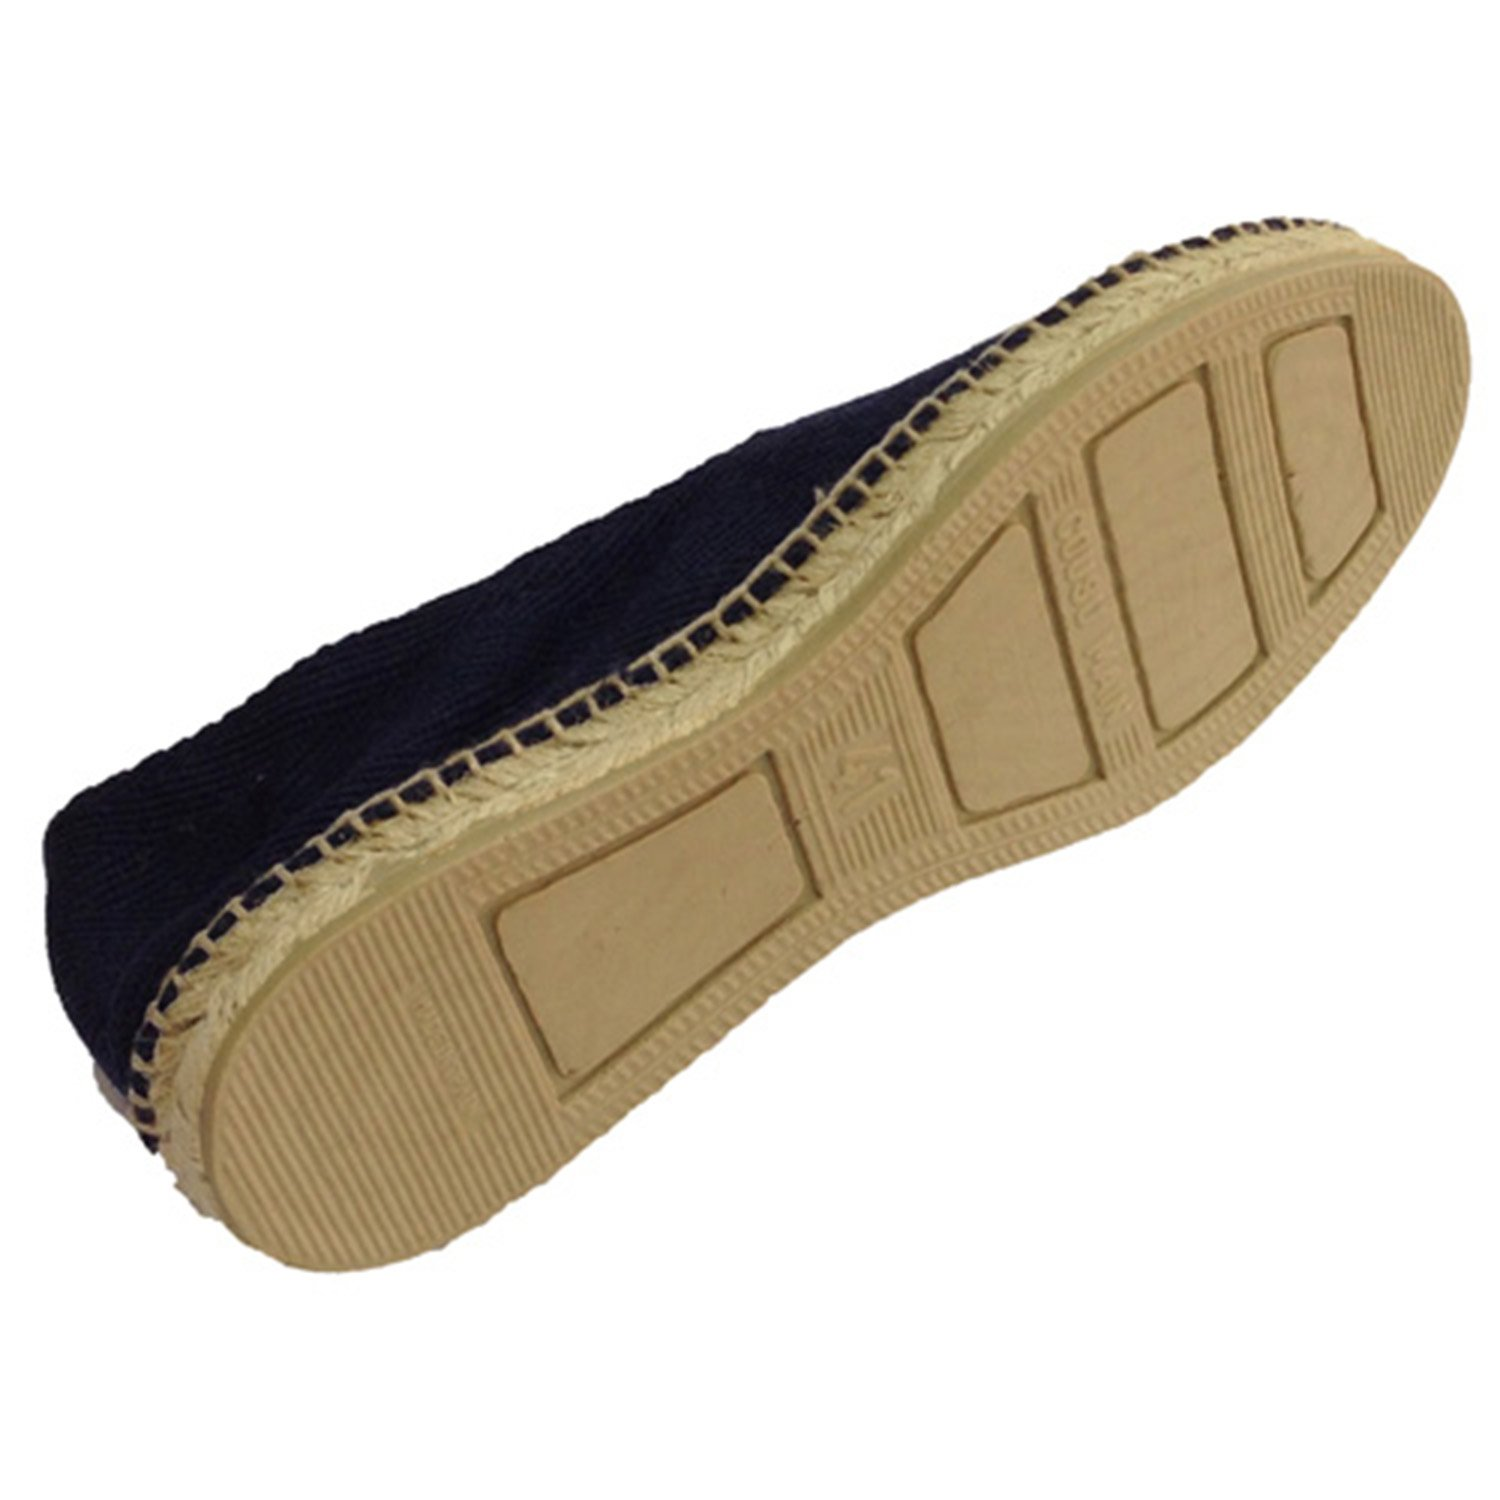 Hemp sandals herringbone fabric and rubber sole below Made in Spain in navy  blue: Amazon.co.uk: Shoes & Bags